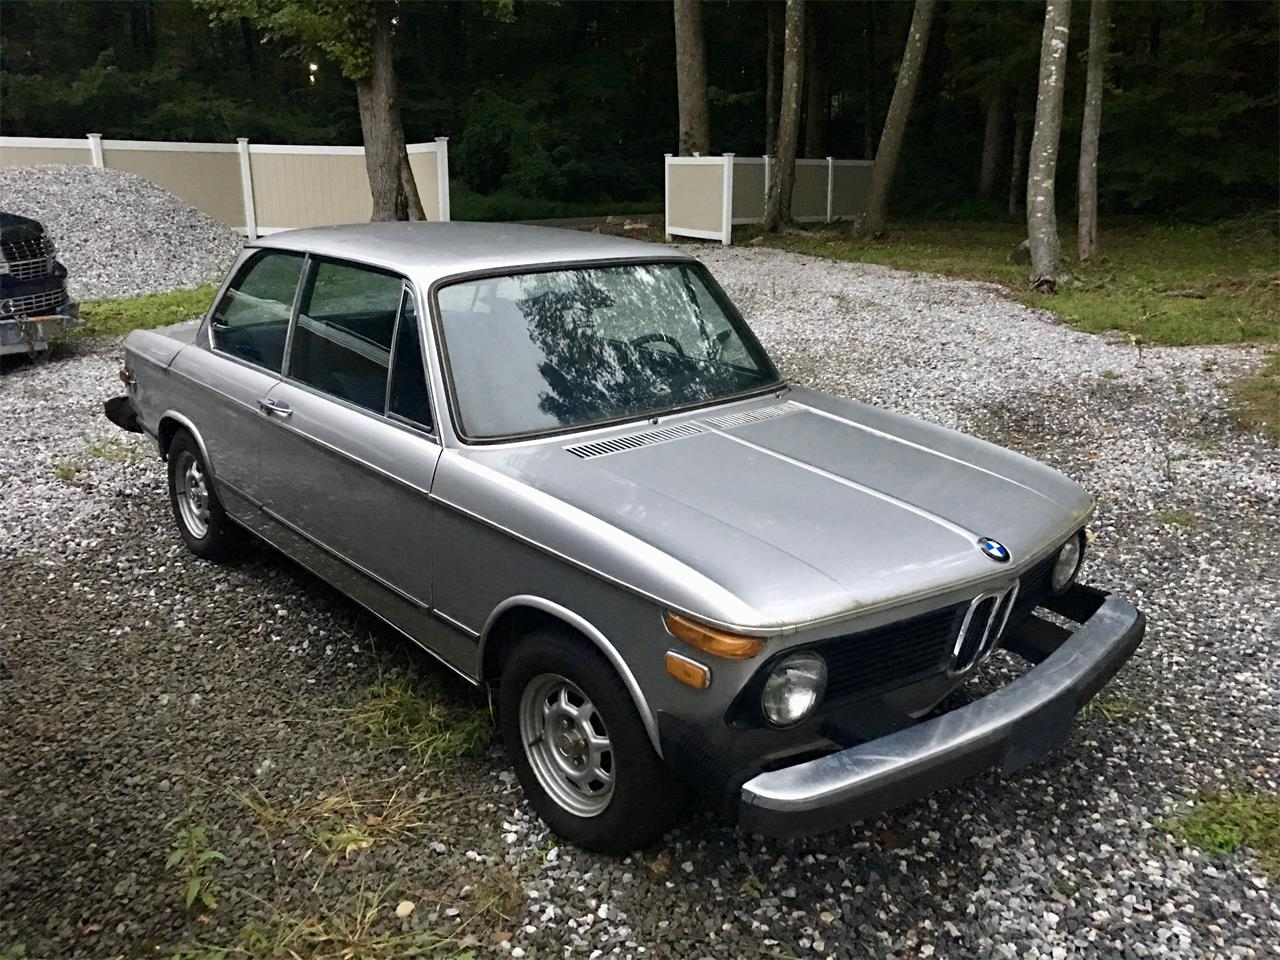 Bmw 2002 For Sale >> 1976 Bmw 2002 For Sale Classiccars Com Cc 1143972